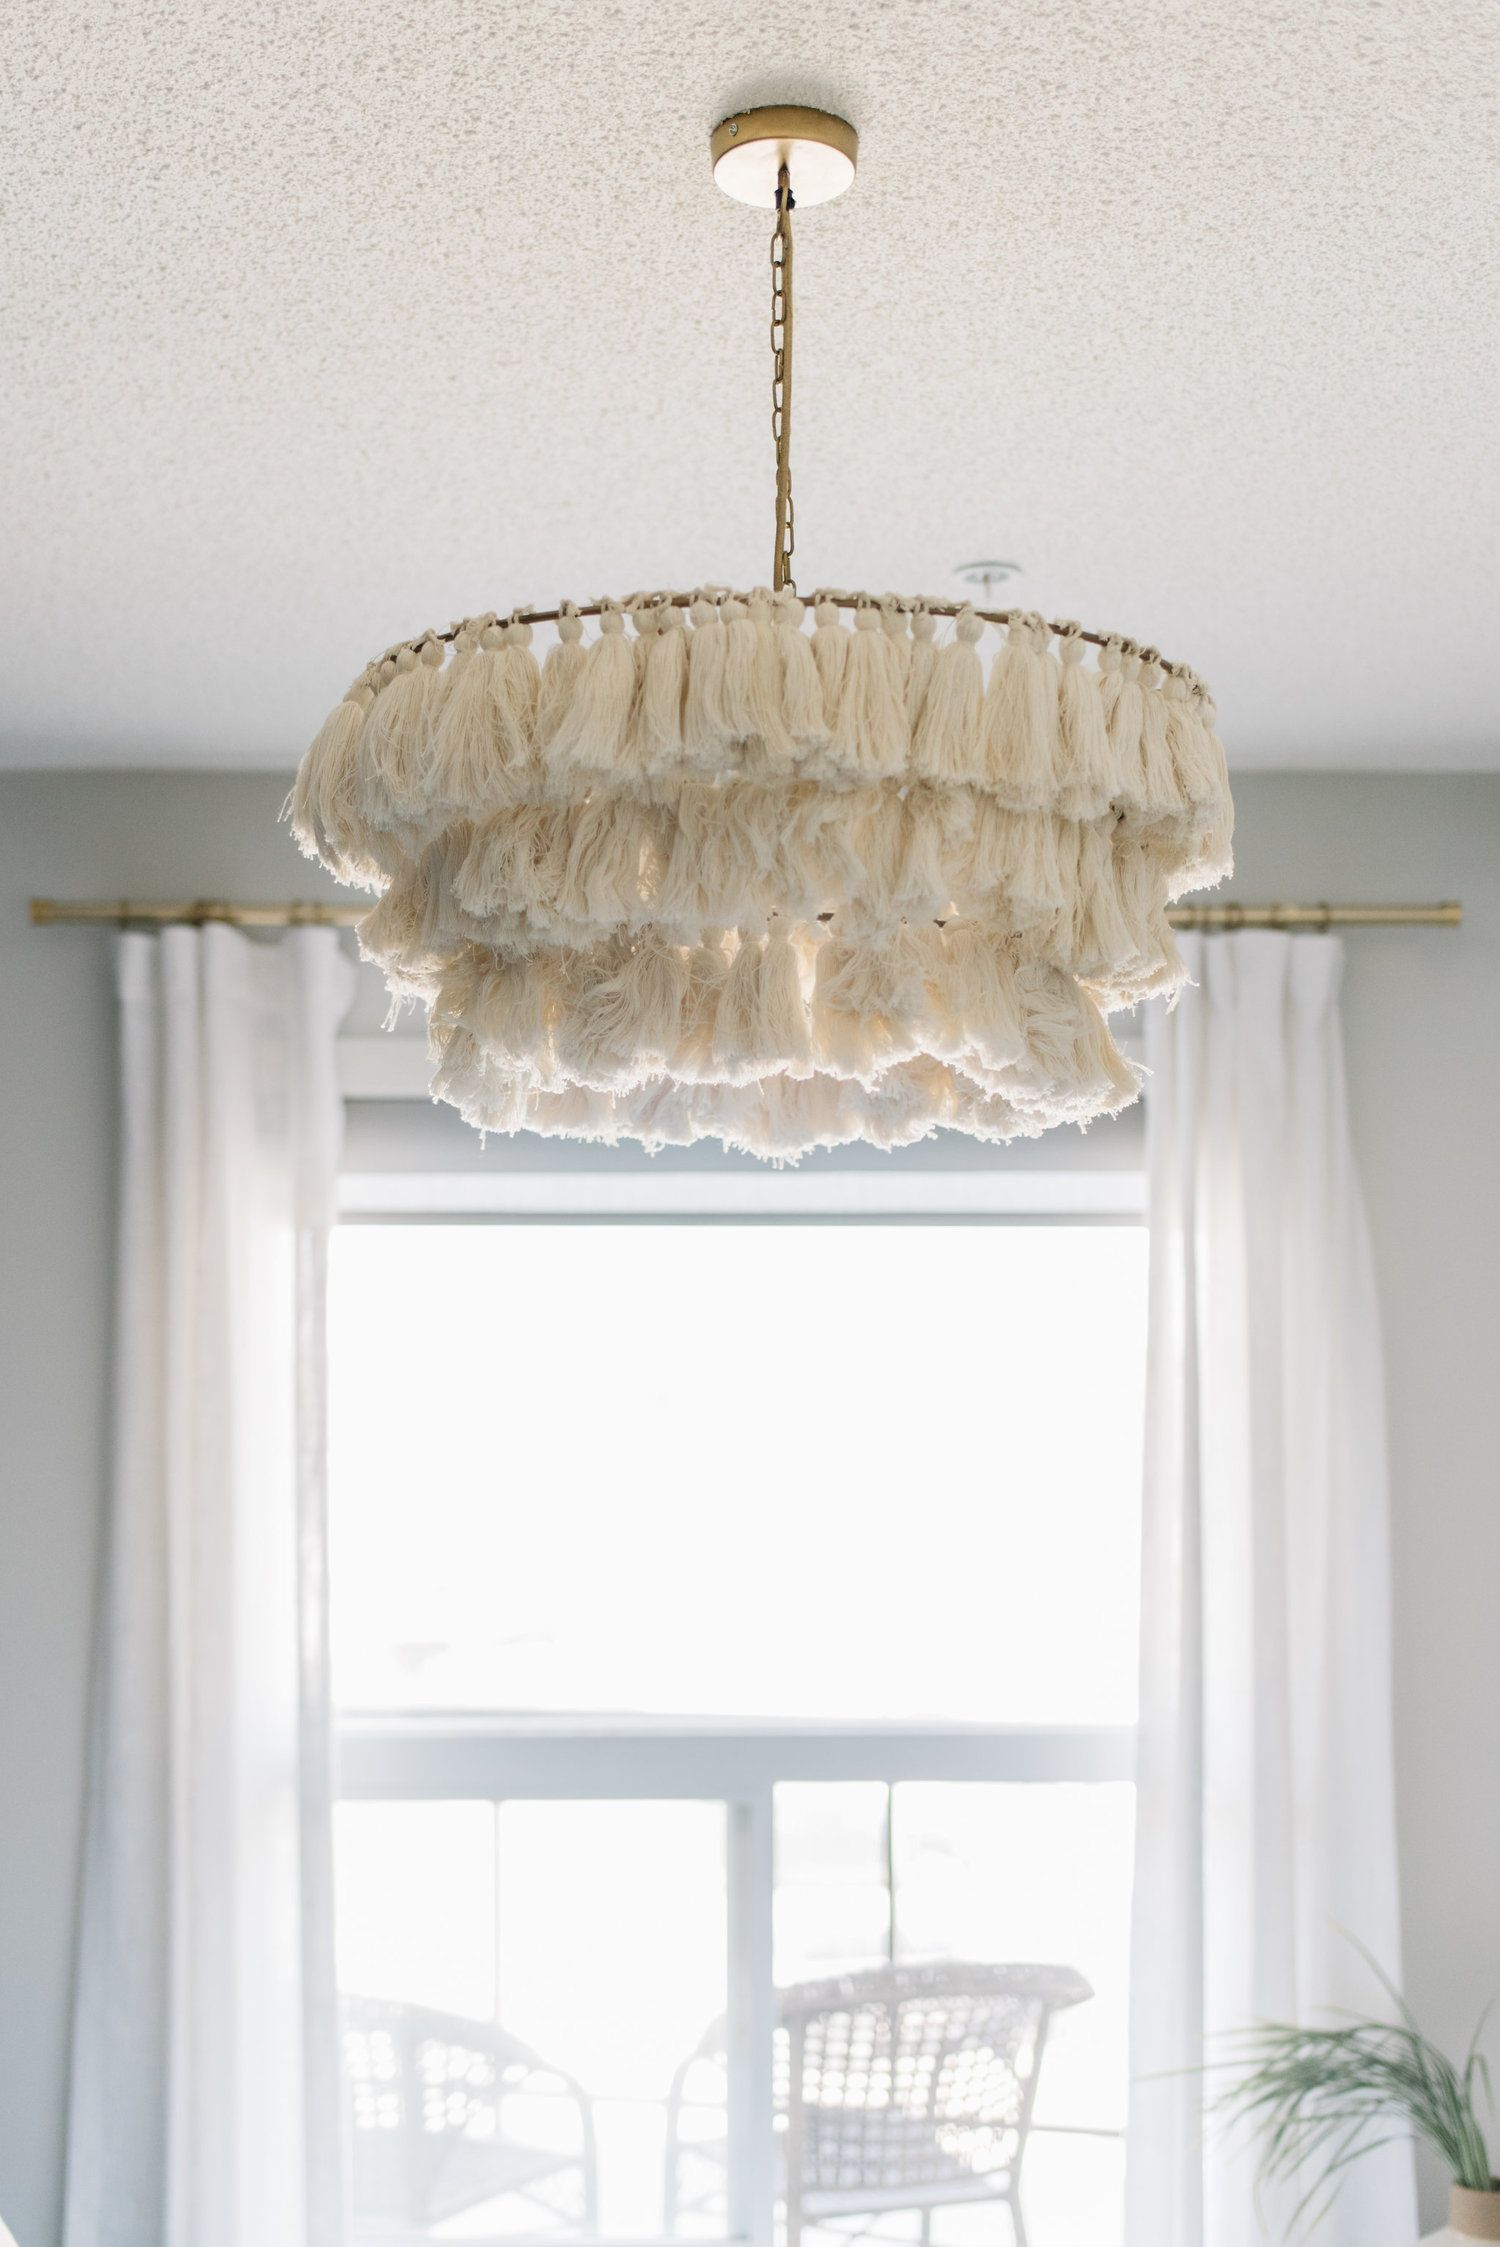 tassel light fixture, jungalow pendant  Bedroom light fixtures